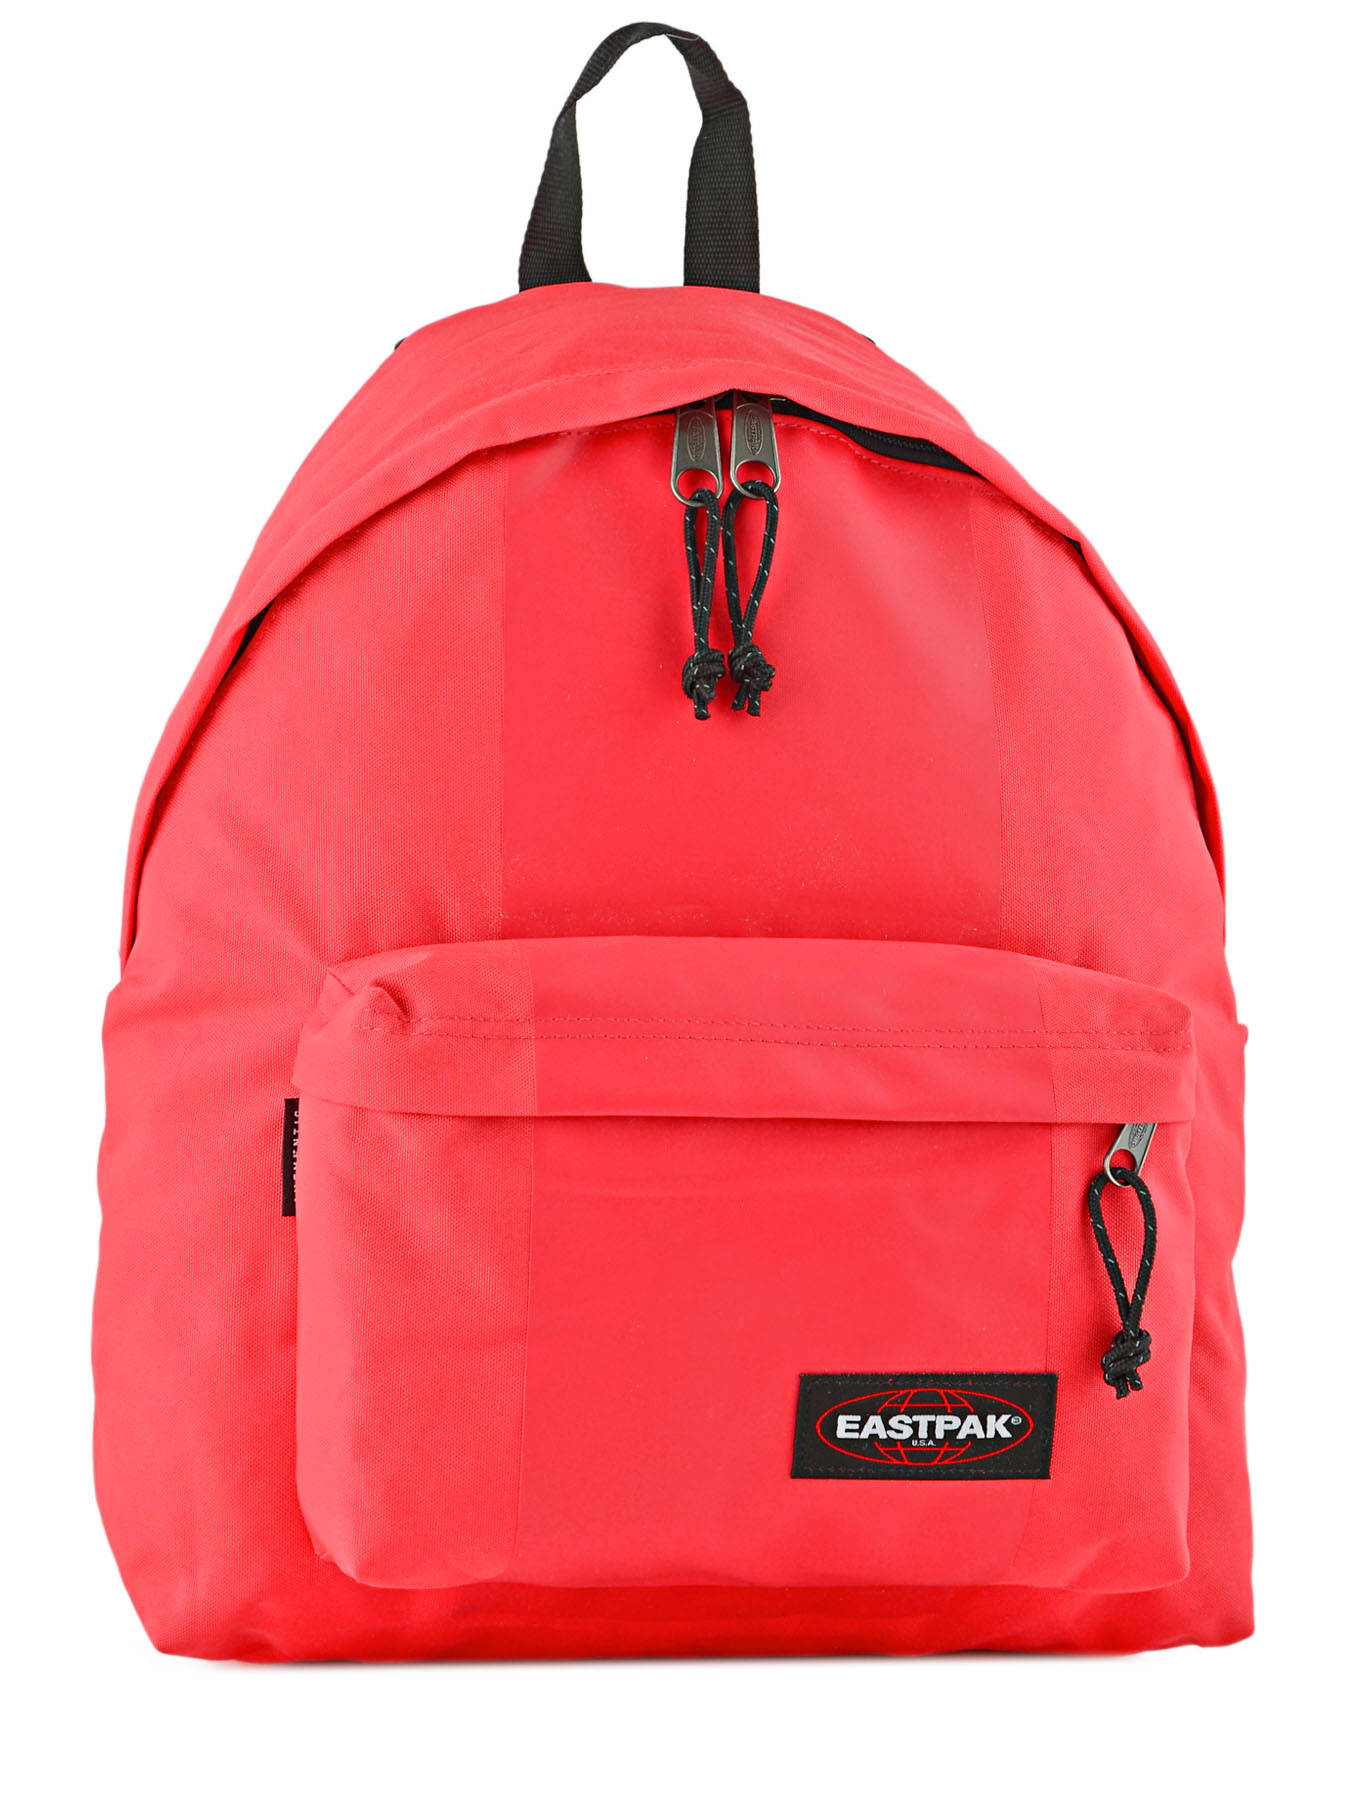 sac dos eastpak authentic pink rubber en vente au meilleur prix. Black Bedroom Furniture Sets. Home Design Ideas